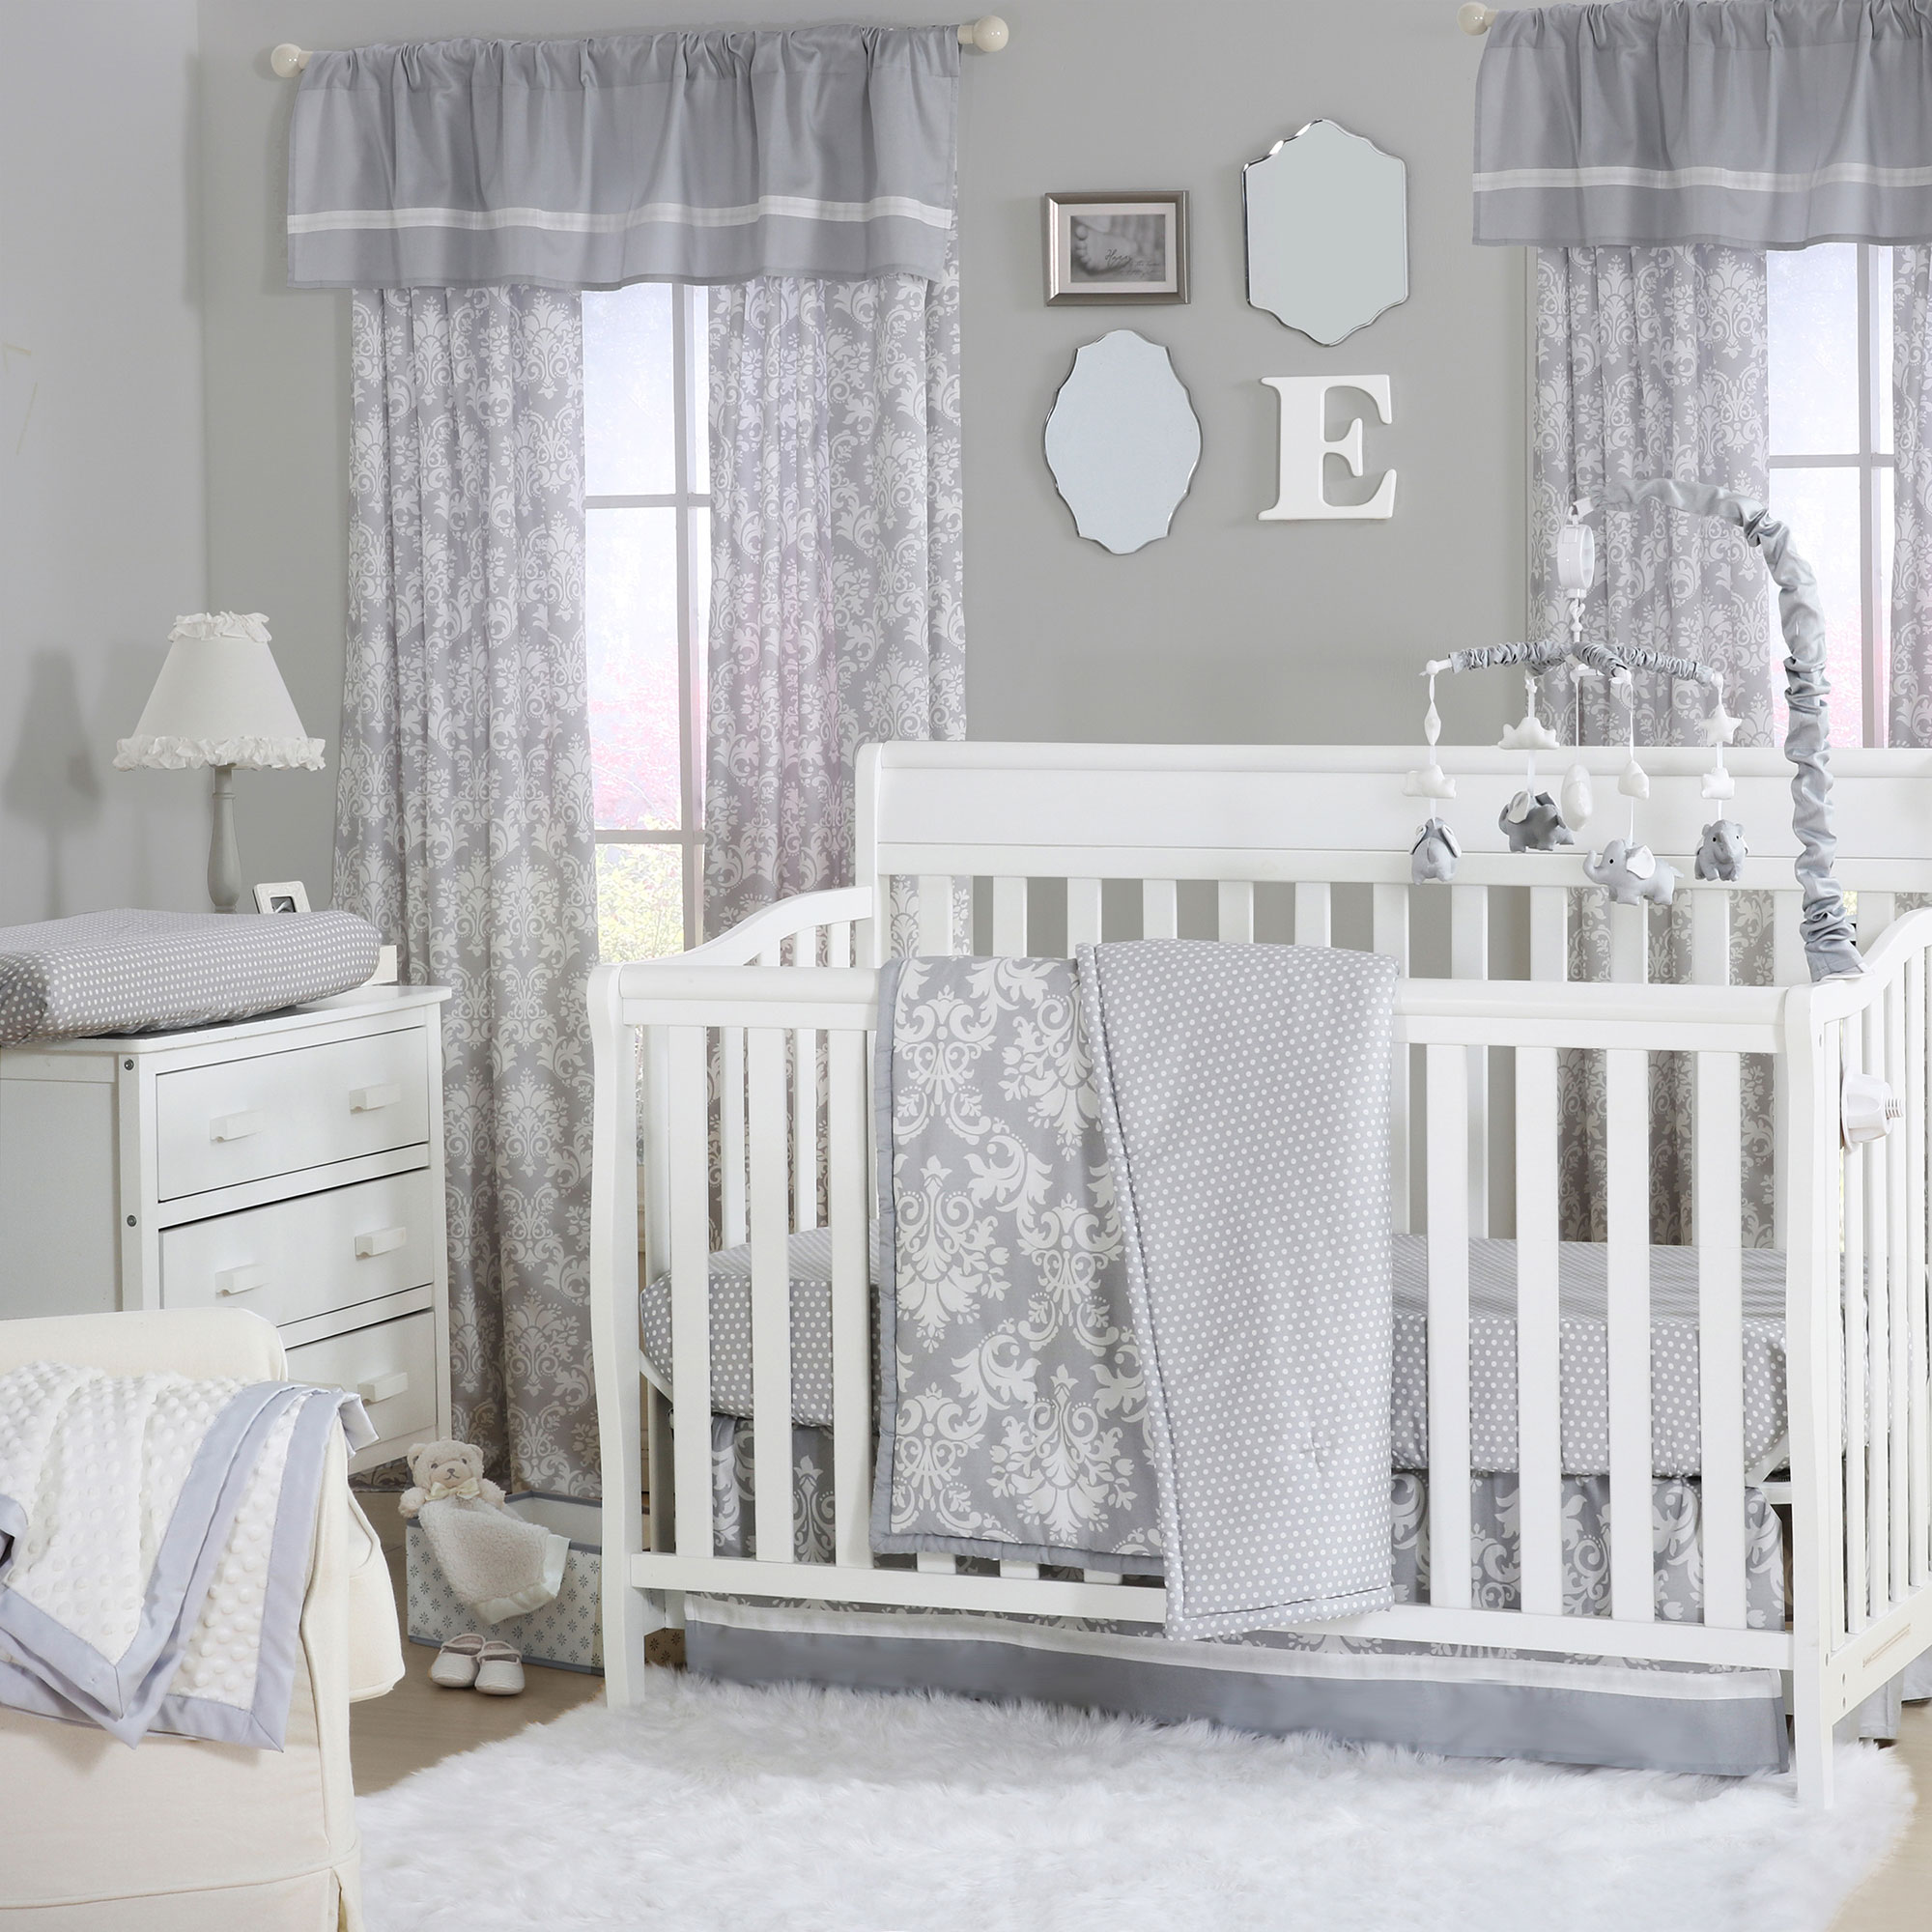 The Peanut Shell 3 Piece Baby Crib Bedding Set Grey Damask And Polka Dot Prints 100 Cotton Quilt Skirt Sheet